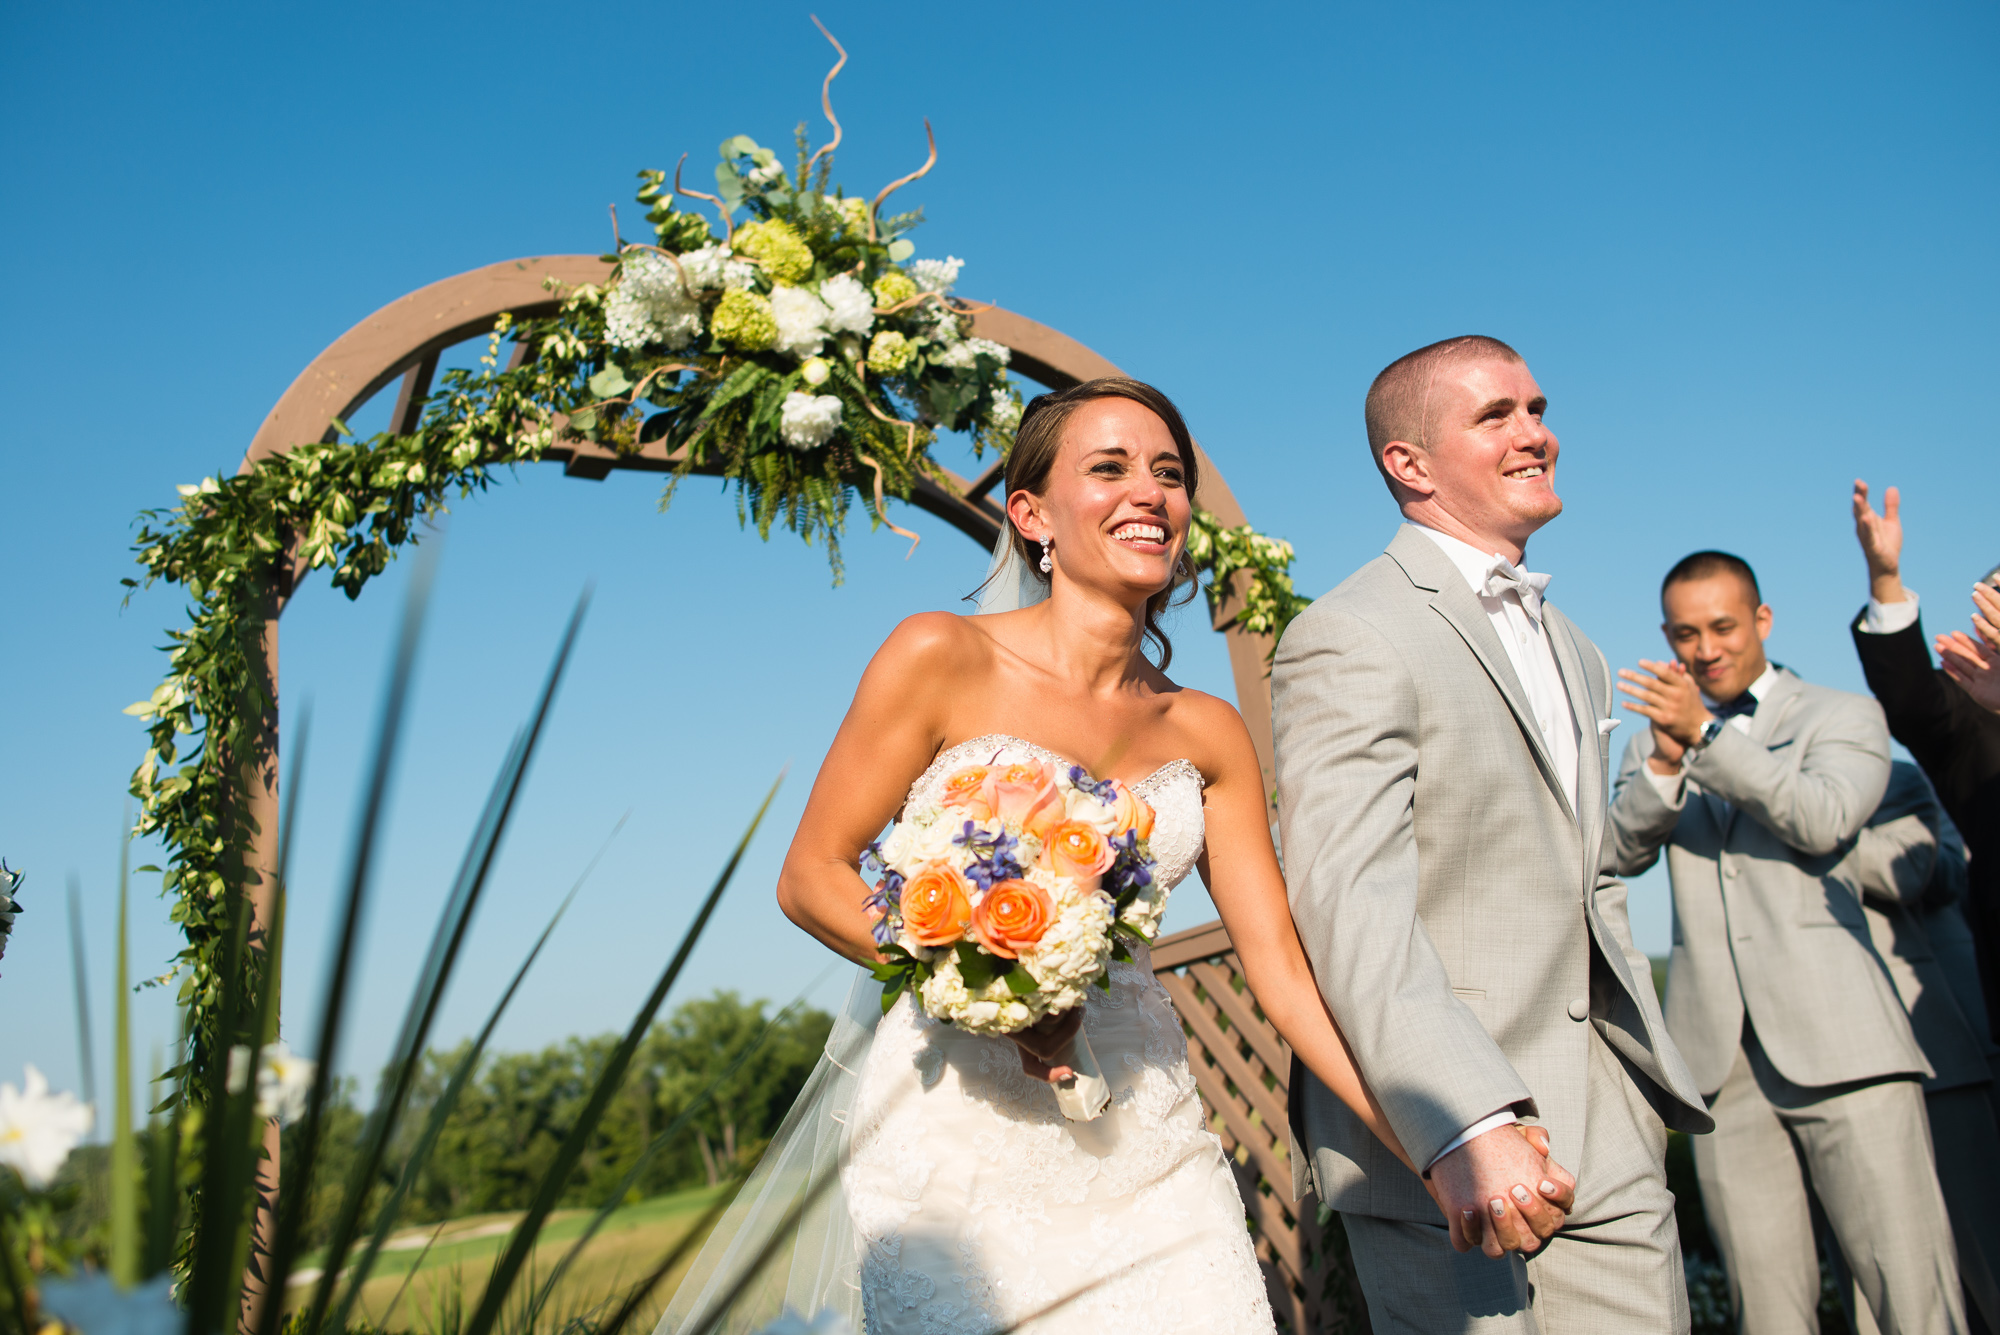 Outdoor Wedding Photography in Central NJ - Jenna Perfette Photography